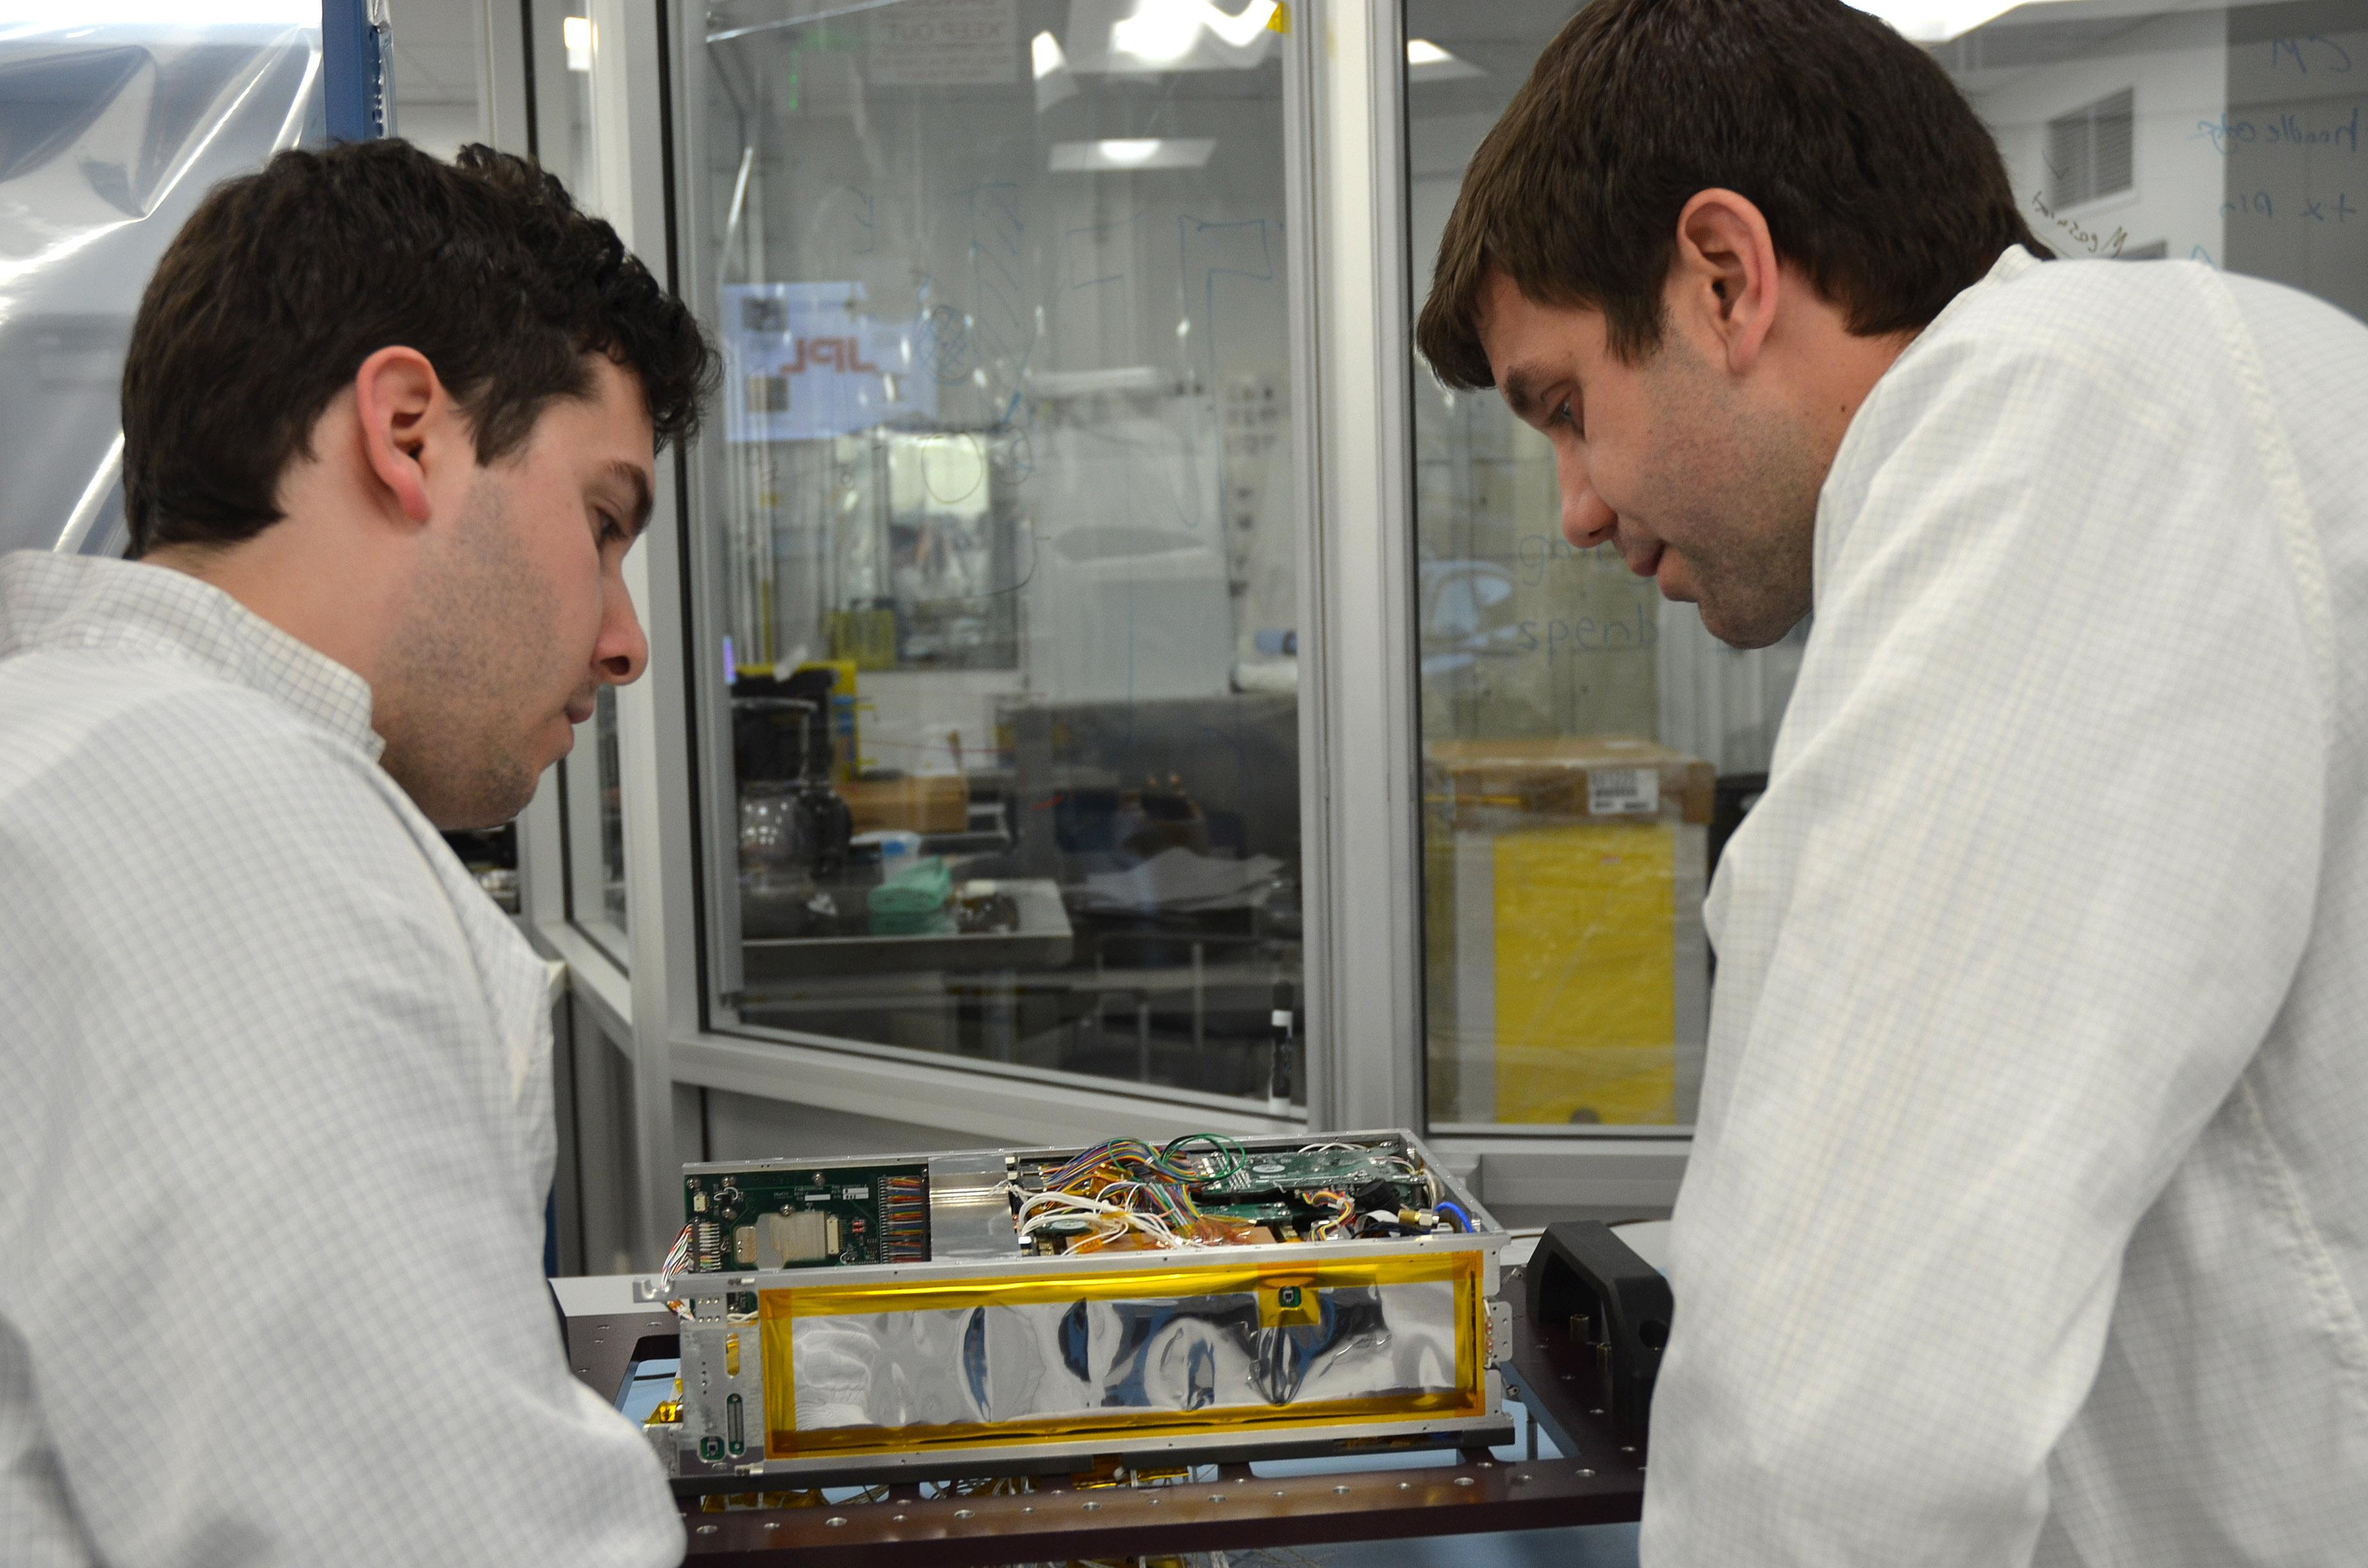 Engineers for NASA's MarCO (Mars Cube One) technology demonstration inspect one of the two MarCO CubeSats. Cody Colley, MarCO integration and test deputy, left, and Andy Klesh, MarCO chief engineer, are on the team at NASA's Jet Propulsion Laboratory, Pasadena, California, preparing twin MarCO CubeSats.